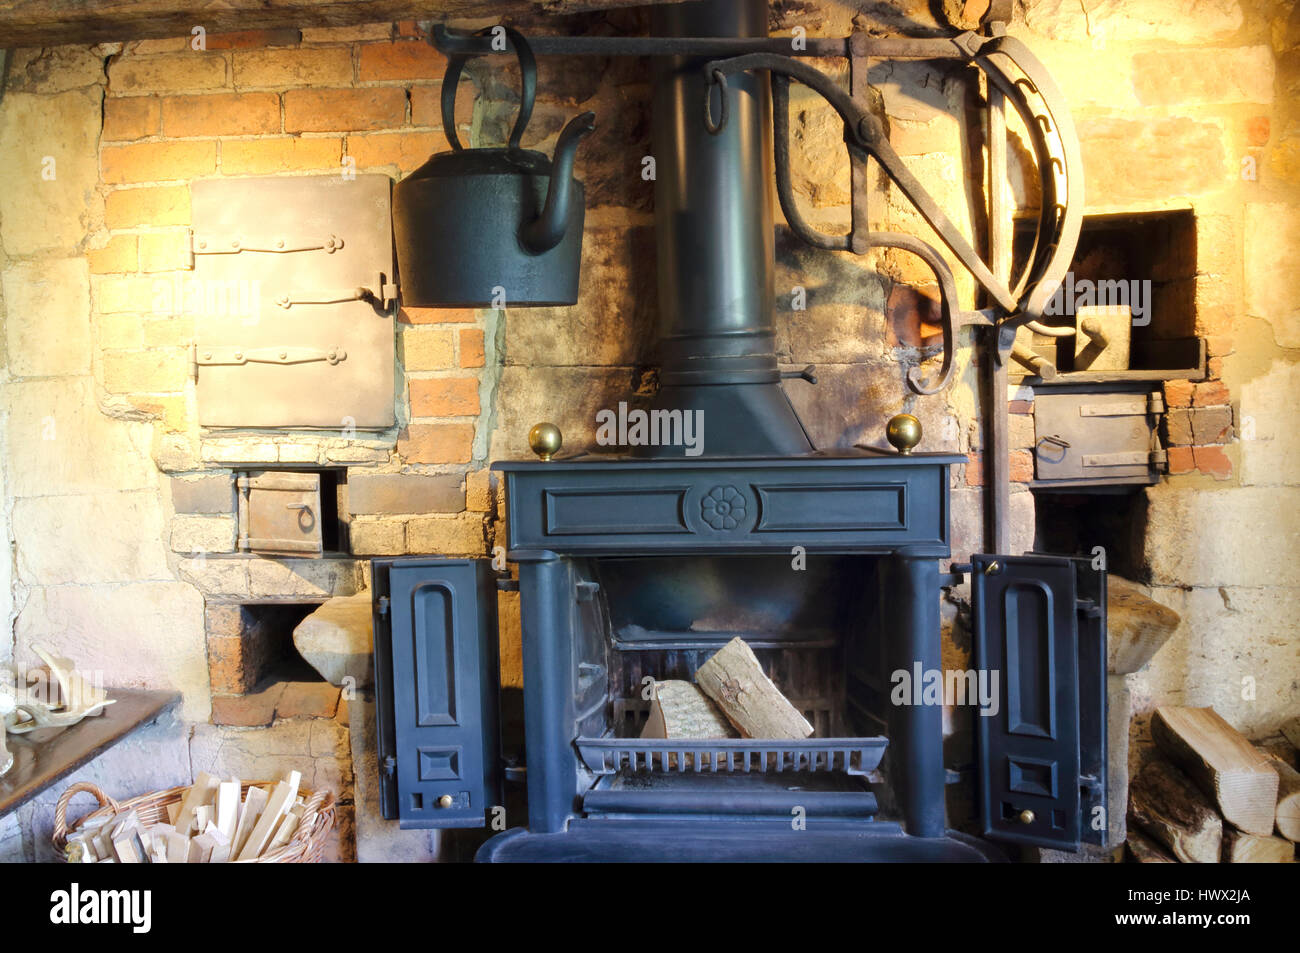 Old style iron, wood burning fireplace with a black hanging kettle - Stock Image